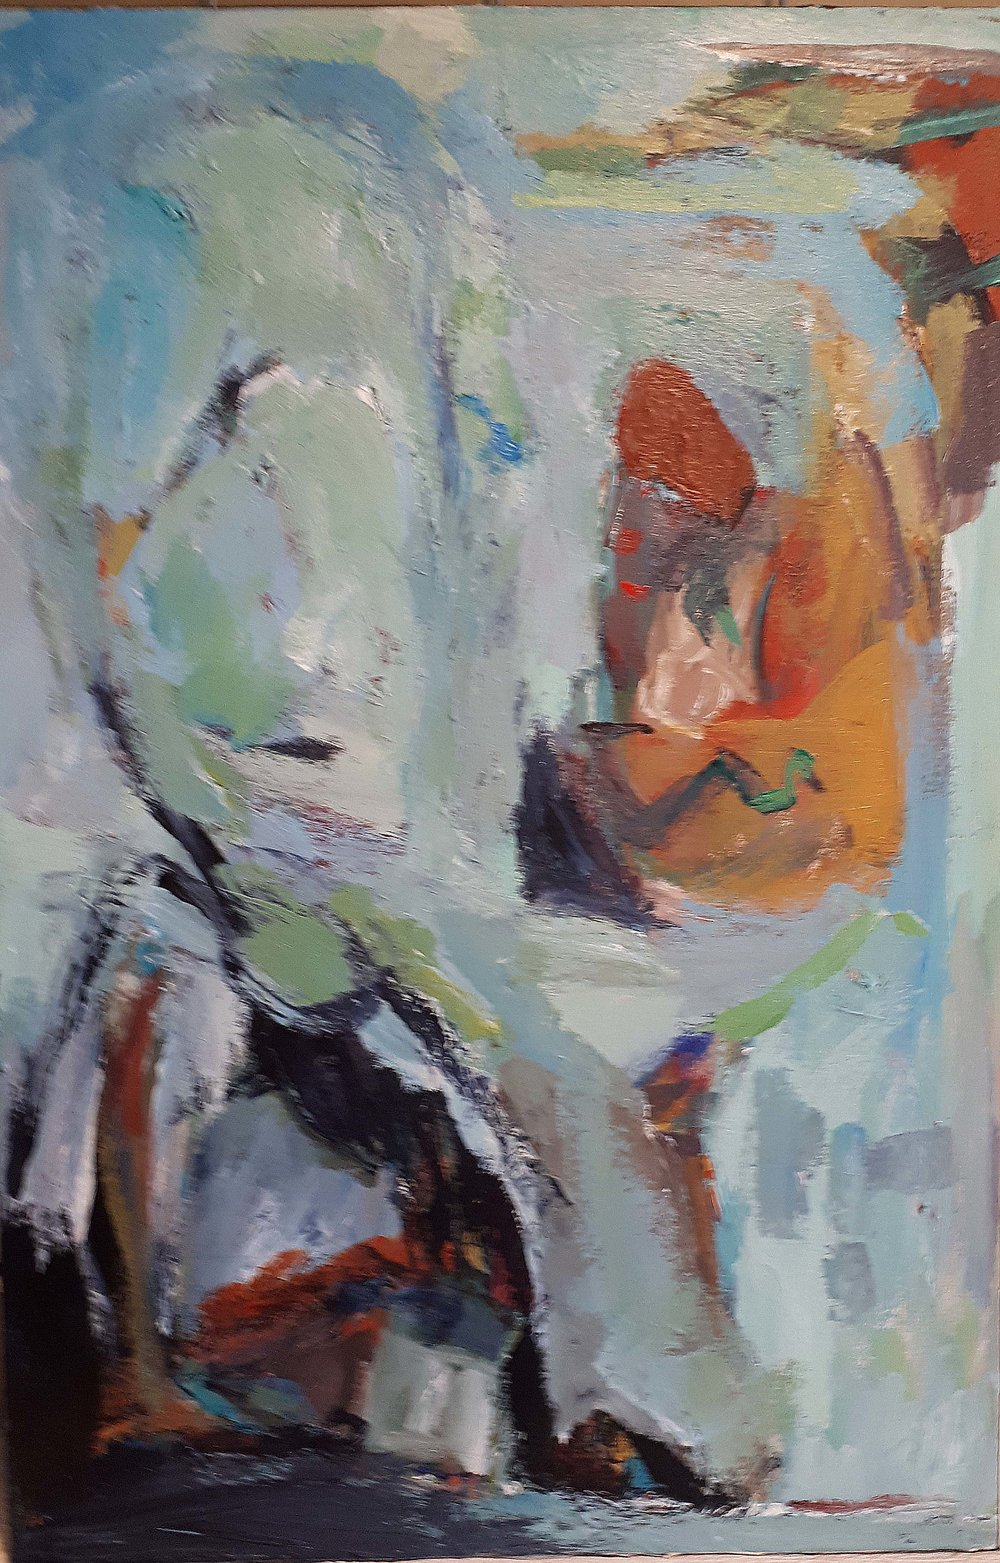 Unsigned, Style of Alexandra Luke, Oil on canvas,Size: 22 x 32, Price: 250.00